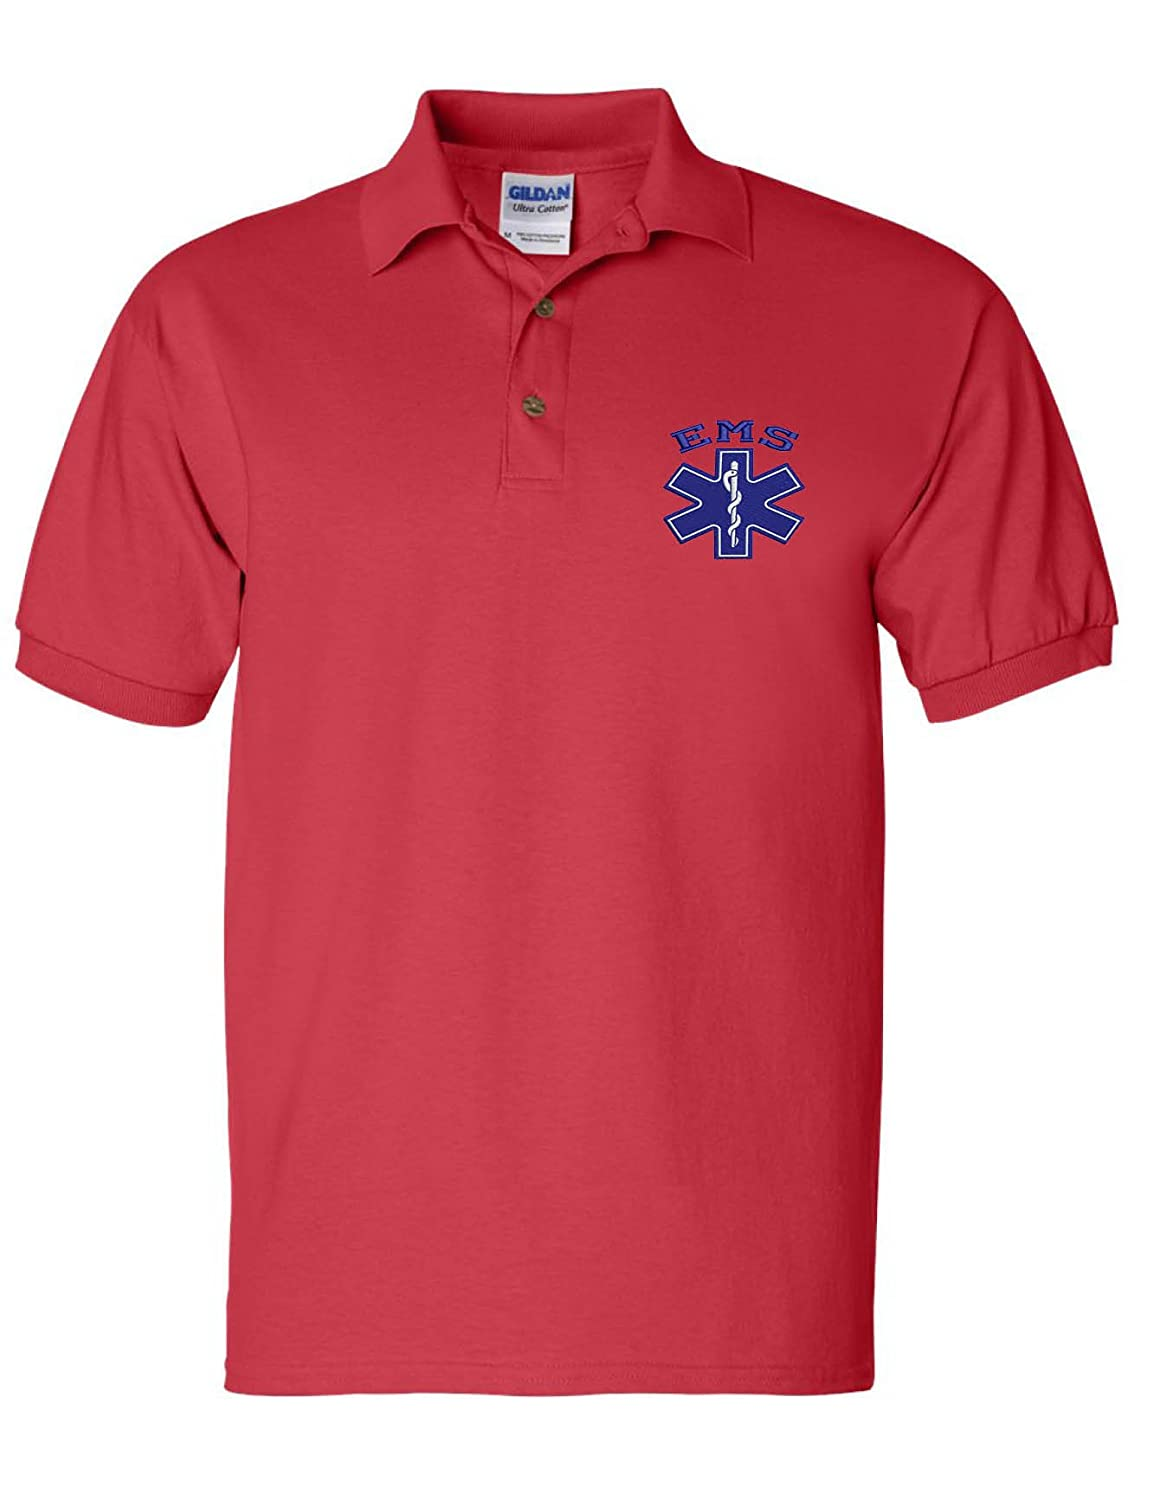 Allntrends Men's Polo T Shirt EMS Embroidered Emergency Medical Services Shirt